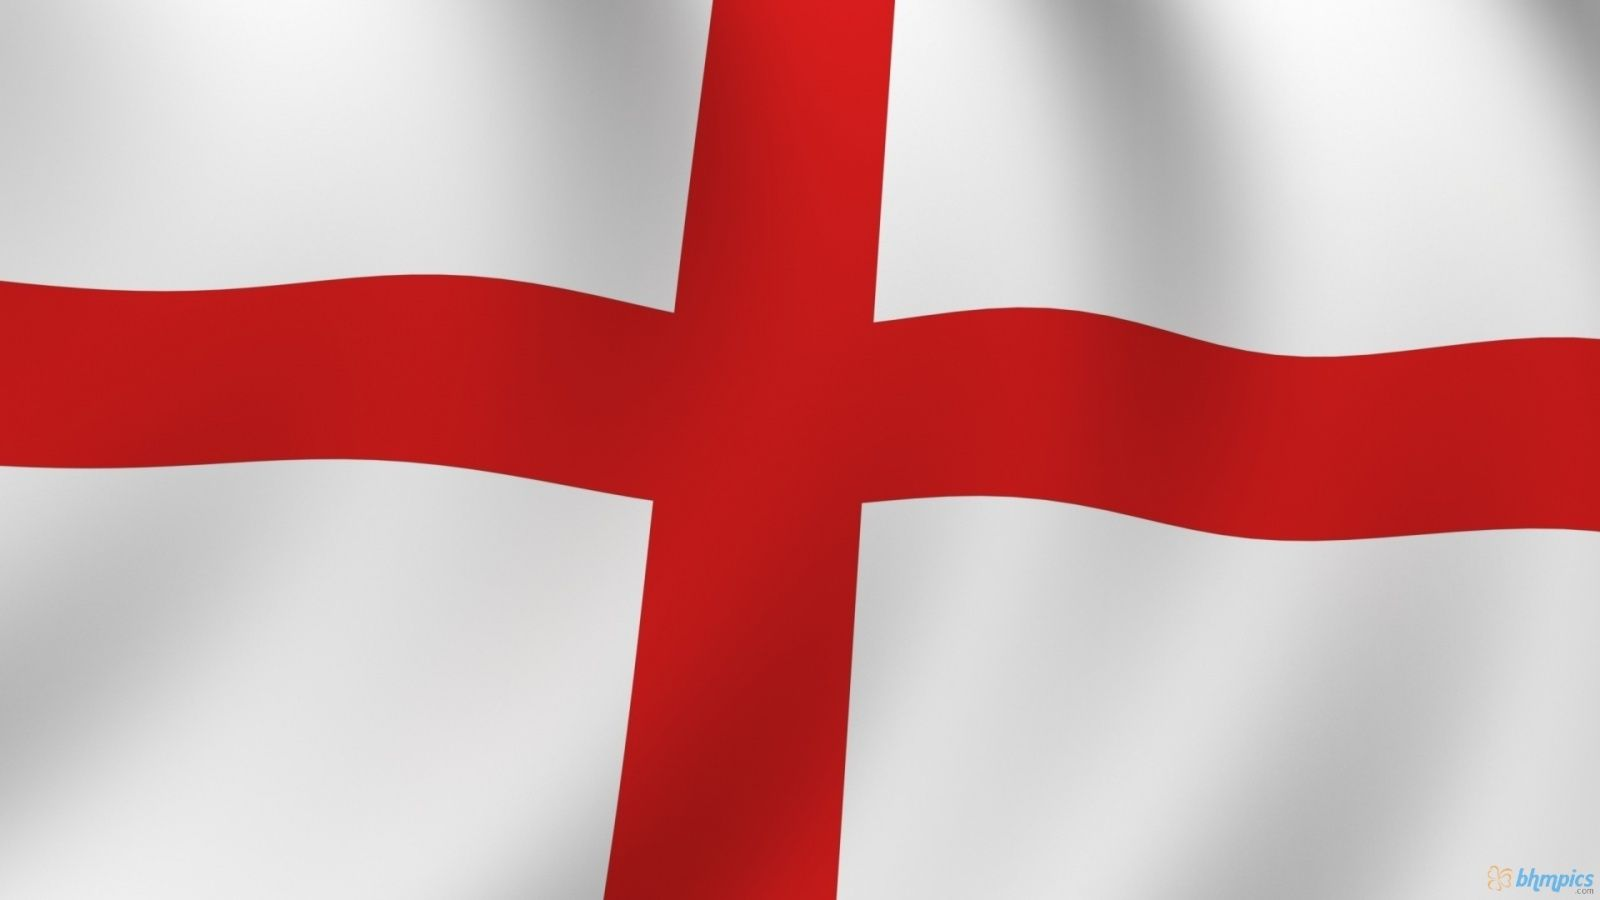 england flag ramdon pictures pinterest flags and england flag